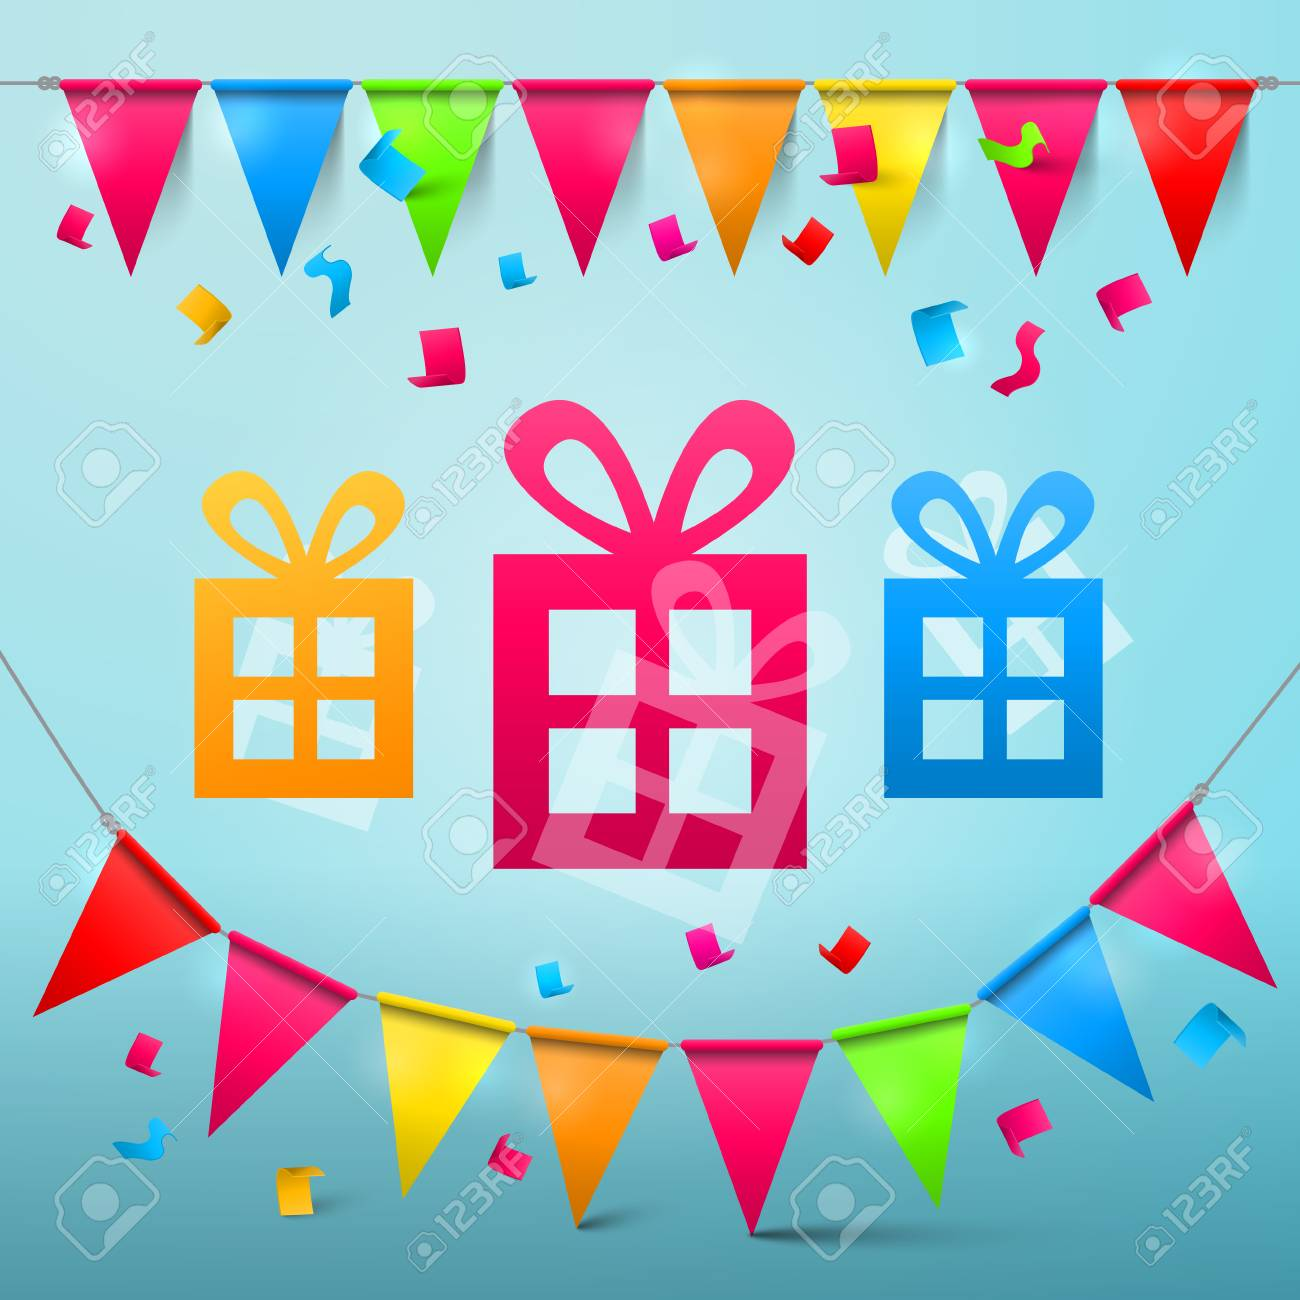 Party Design with Flags and Colorful Papr Cut Gift Boxes - 126610328